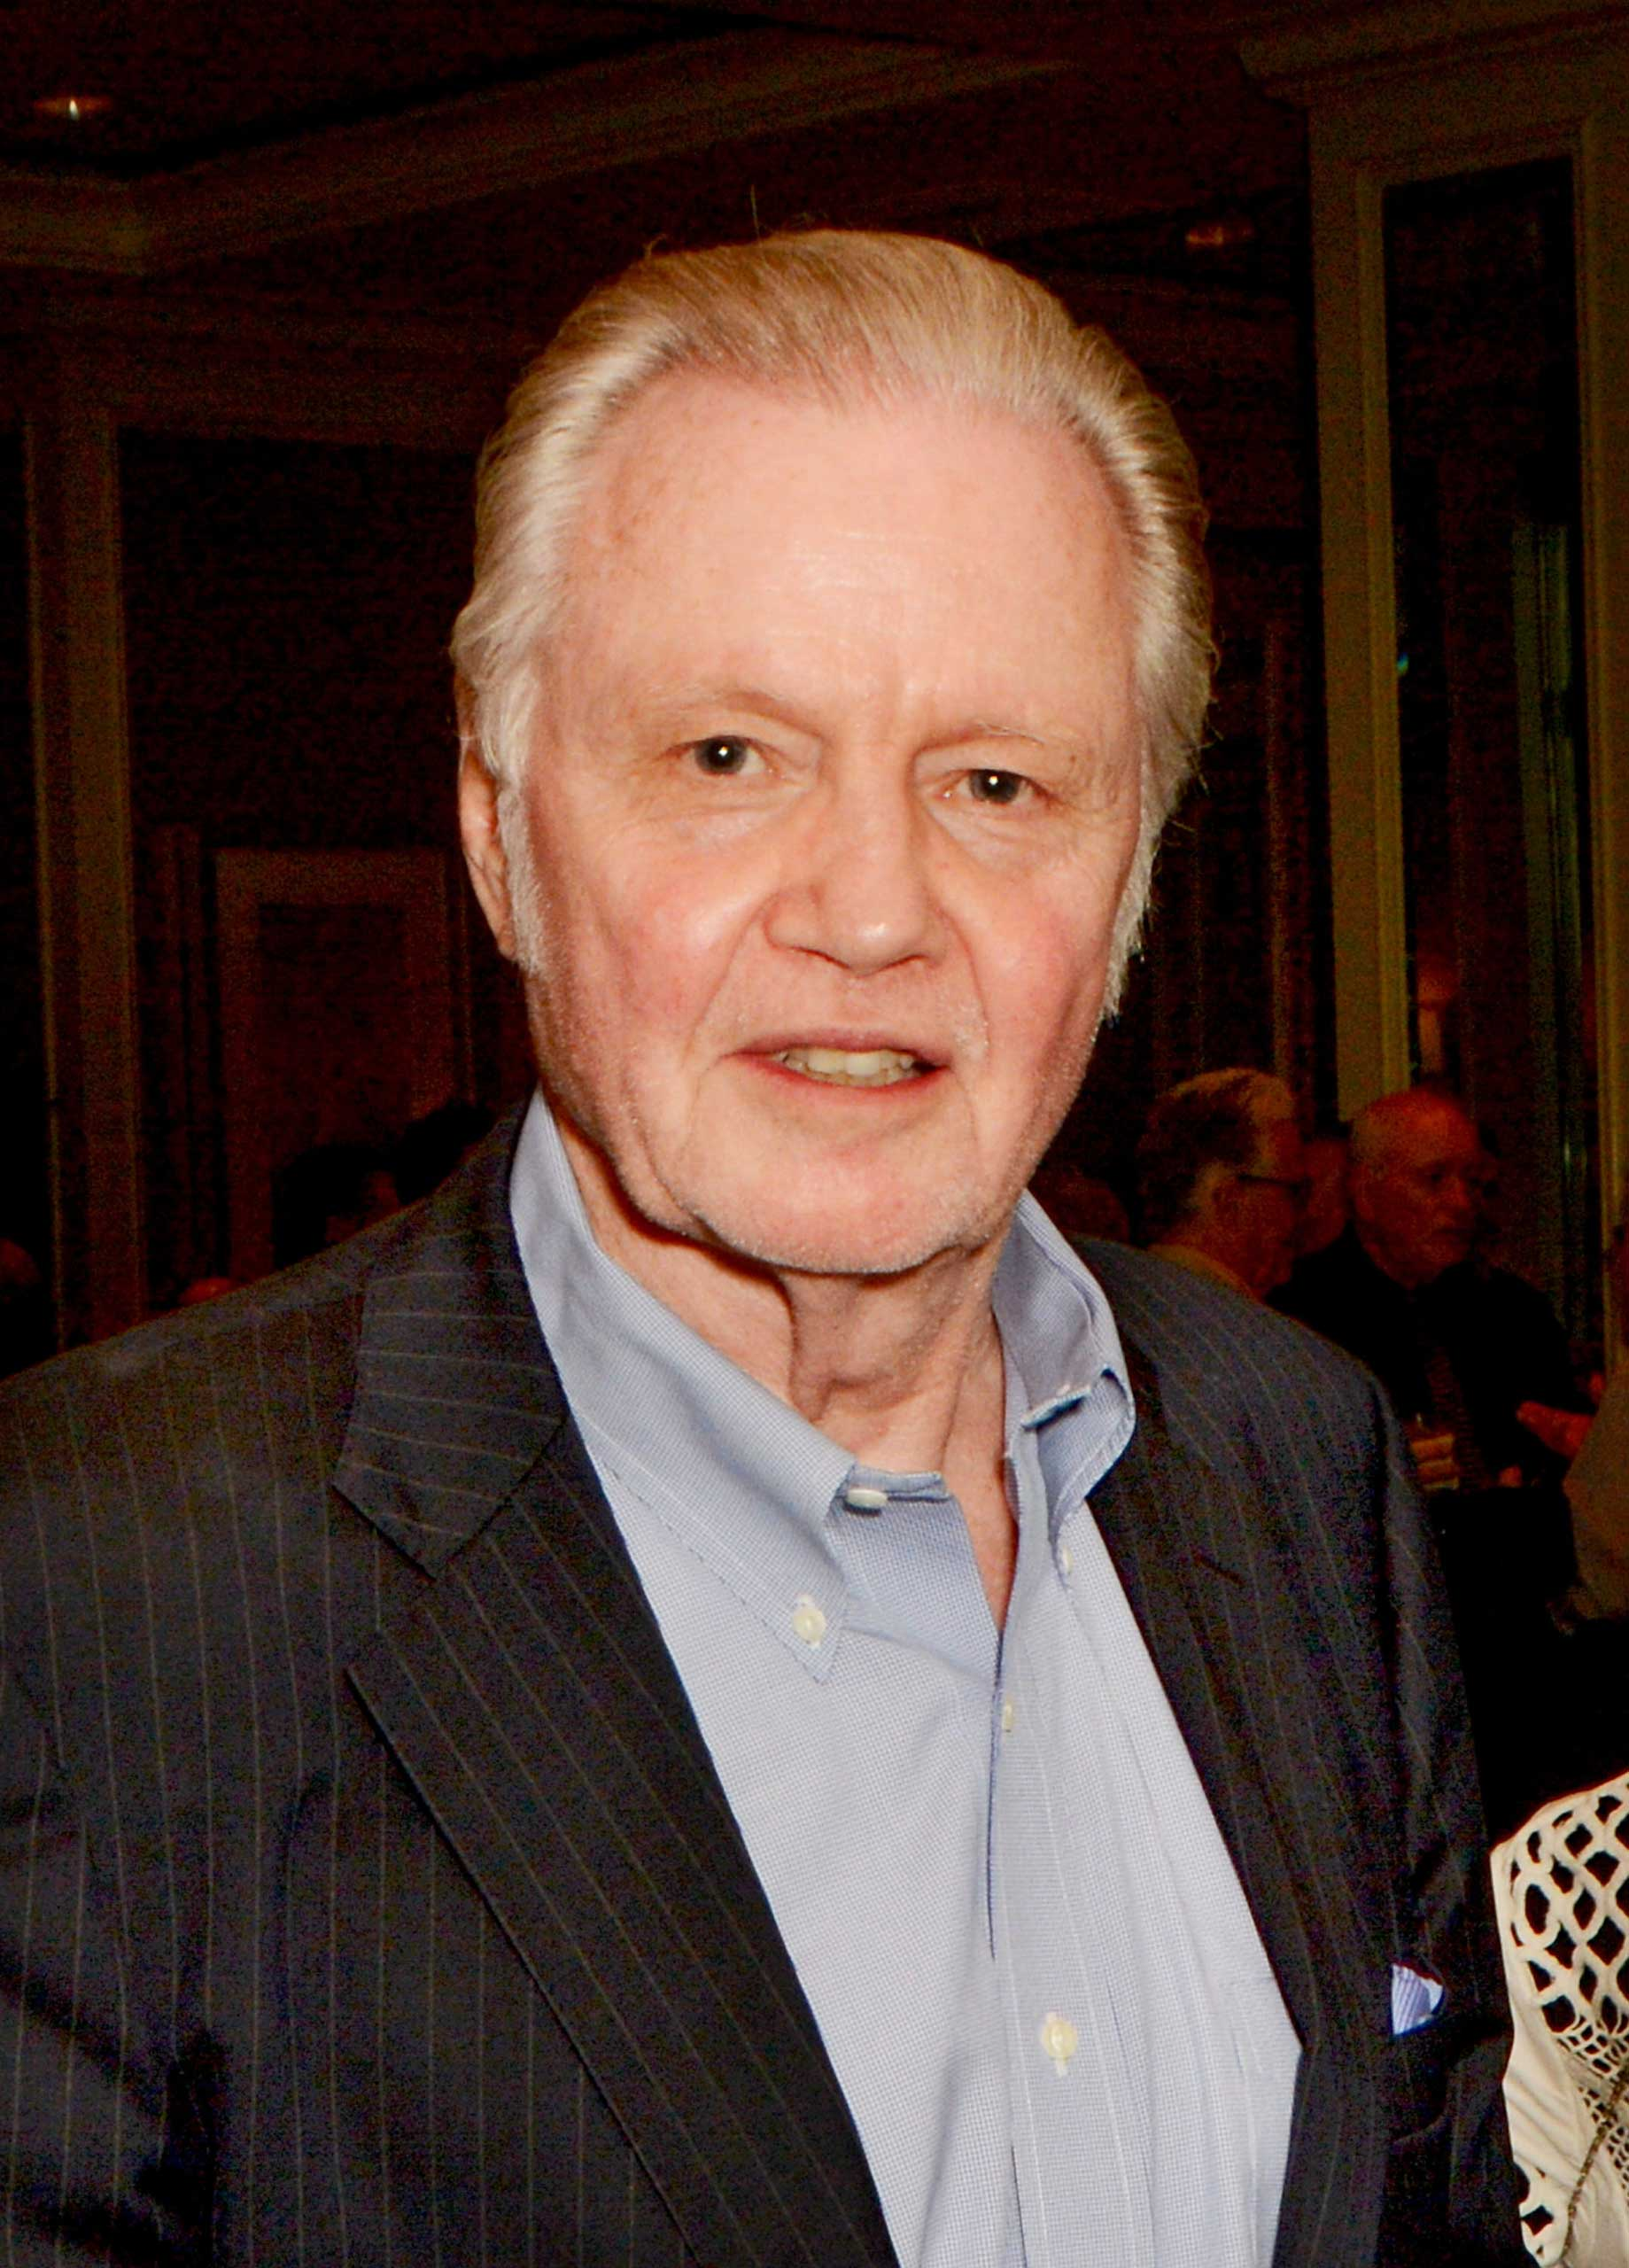 Actor Jon Voight attends The Salute to Hollywood Gala: Unite for Remembrance presented by The American Society for Yad Vashem & Jewish Life Foundation at the Four Seasons Hotel Los Angeles in Beverly Hills, on June 28, 2015.